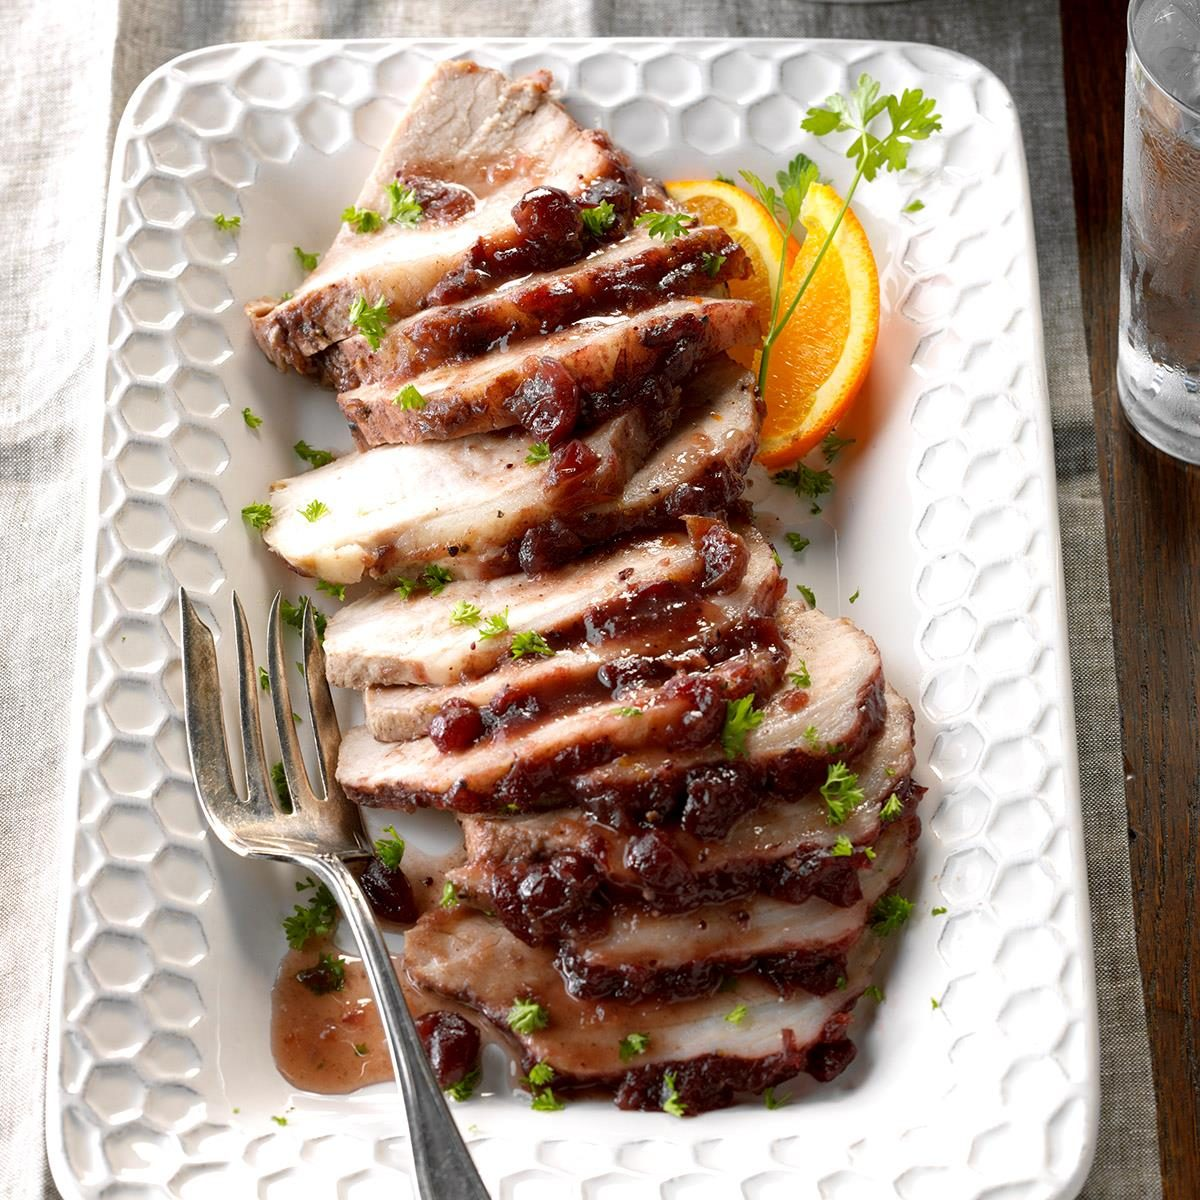 Day 22: Moist Cranberry Pork Roast